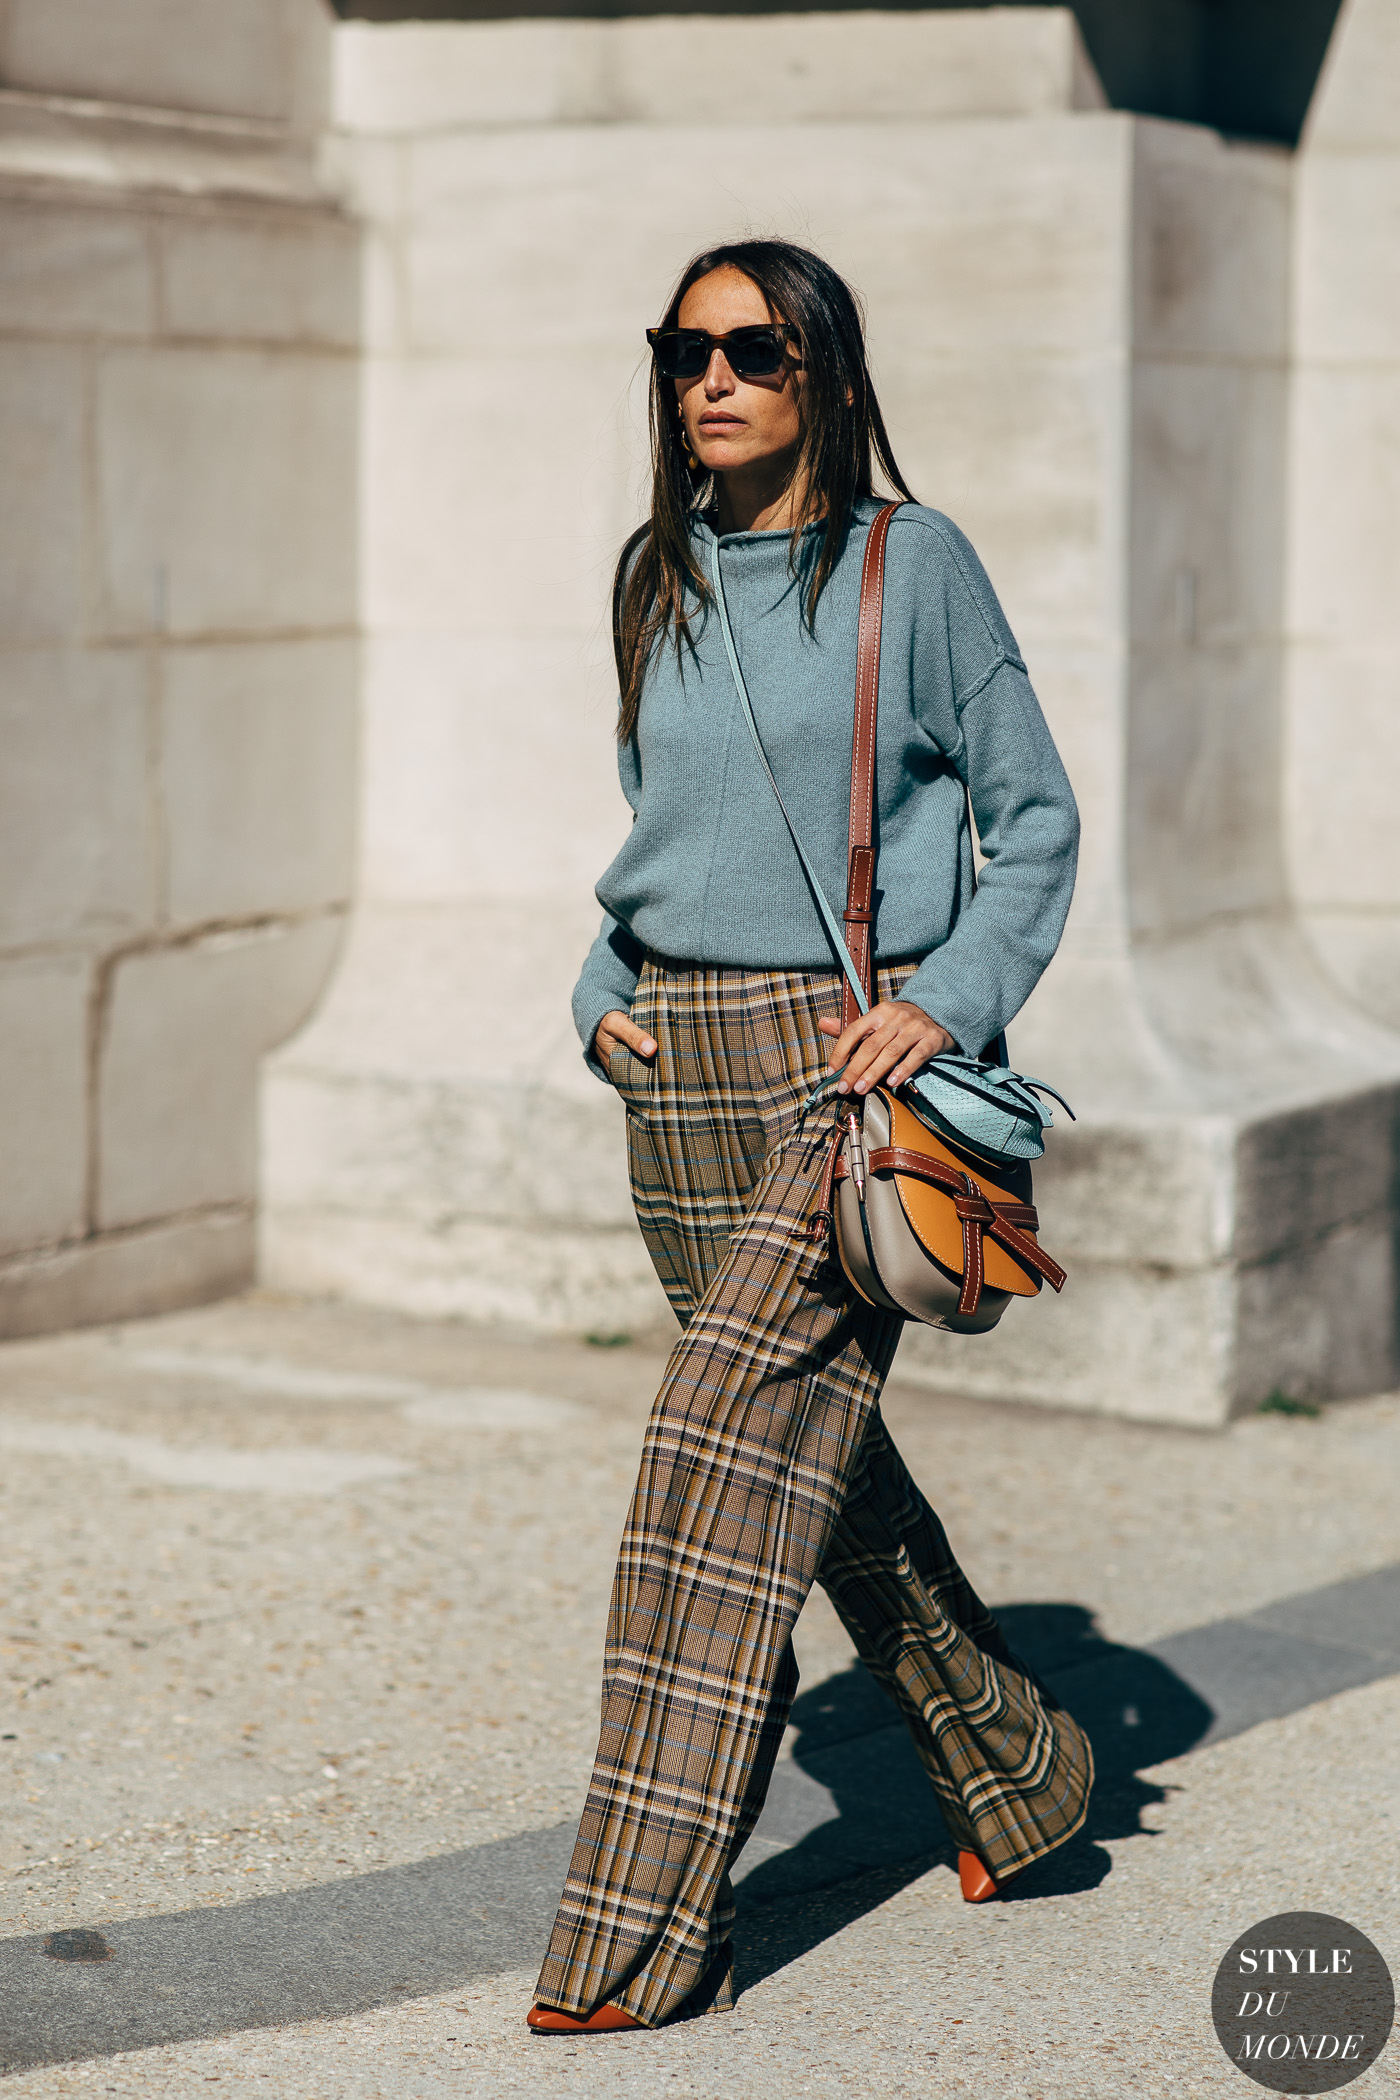 Chloe-Harrouche-by-STYLEDUMONDE-Street-Style-Fashion-Photography20180930_48A7994.jpg